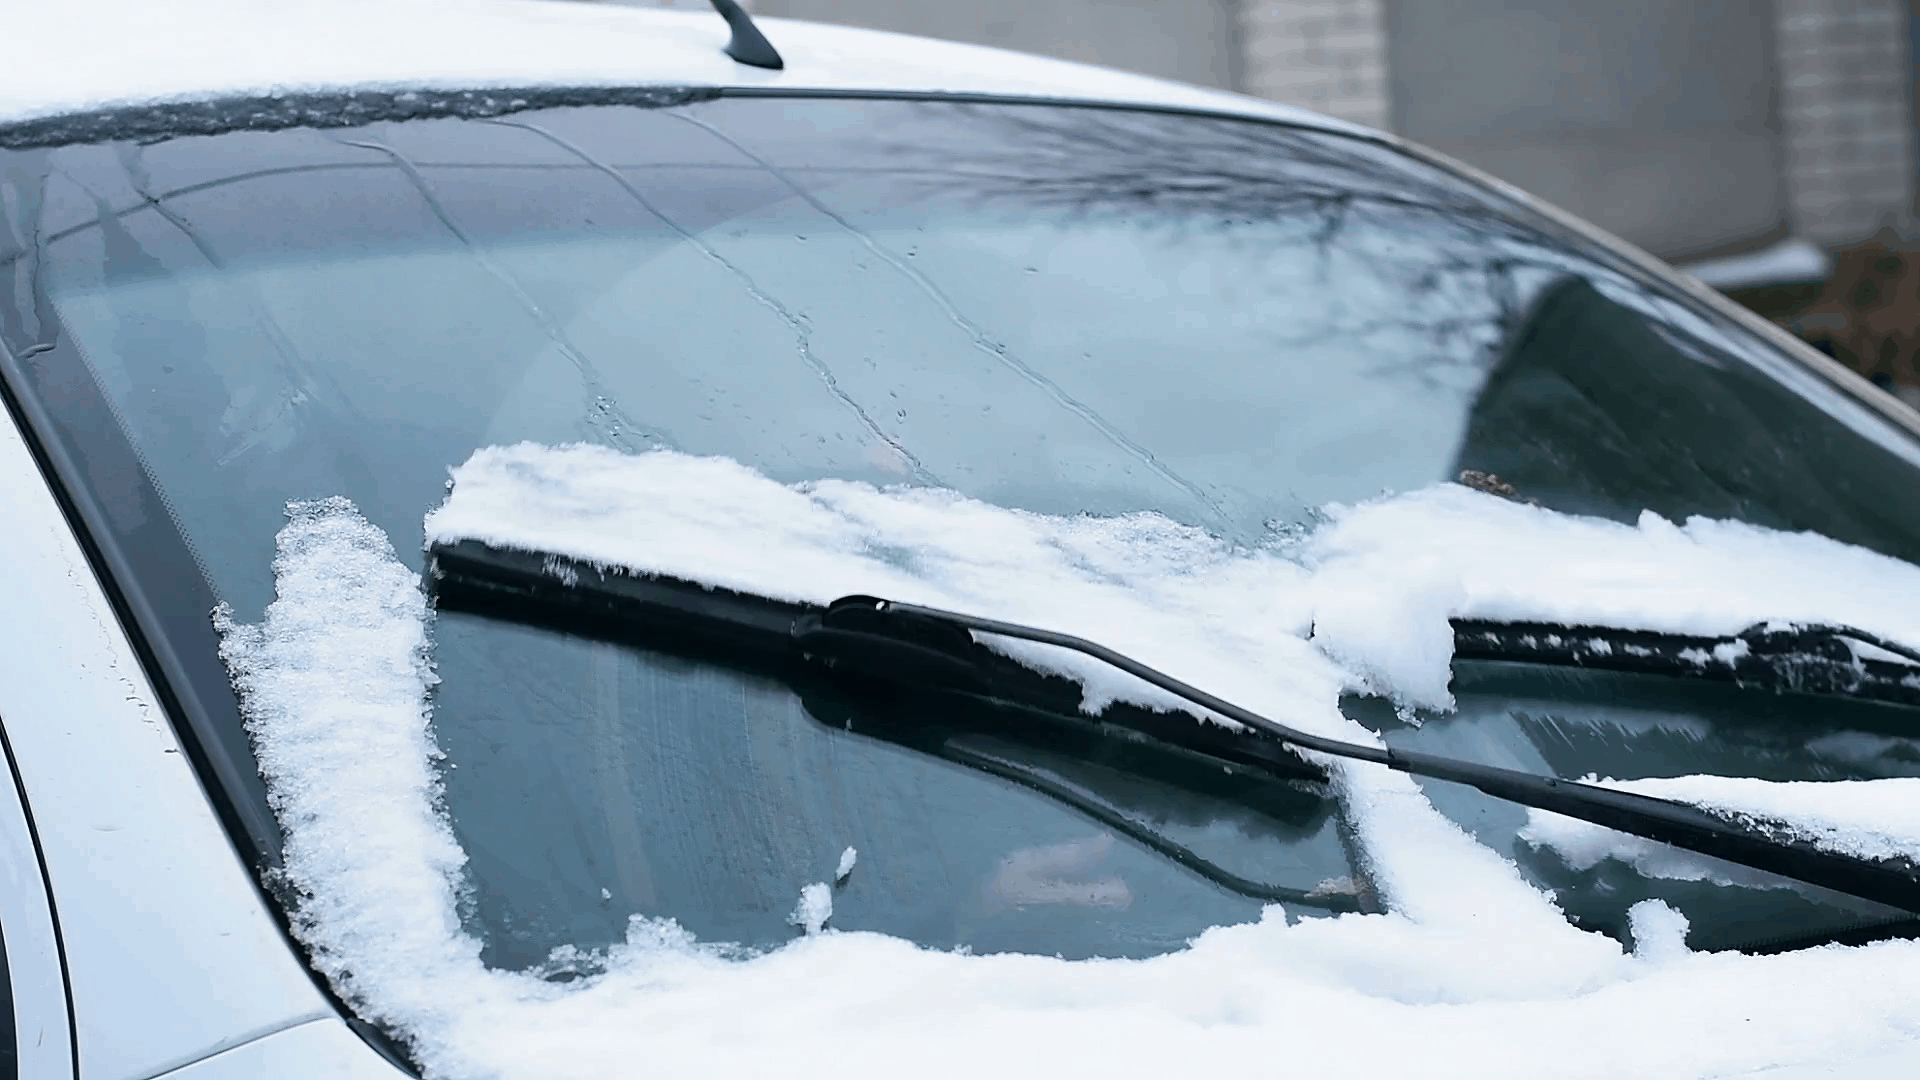 Windshield wipers working on a snowy vehicle